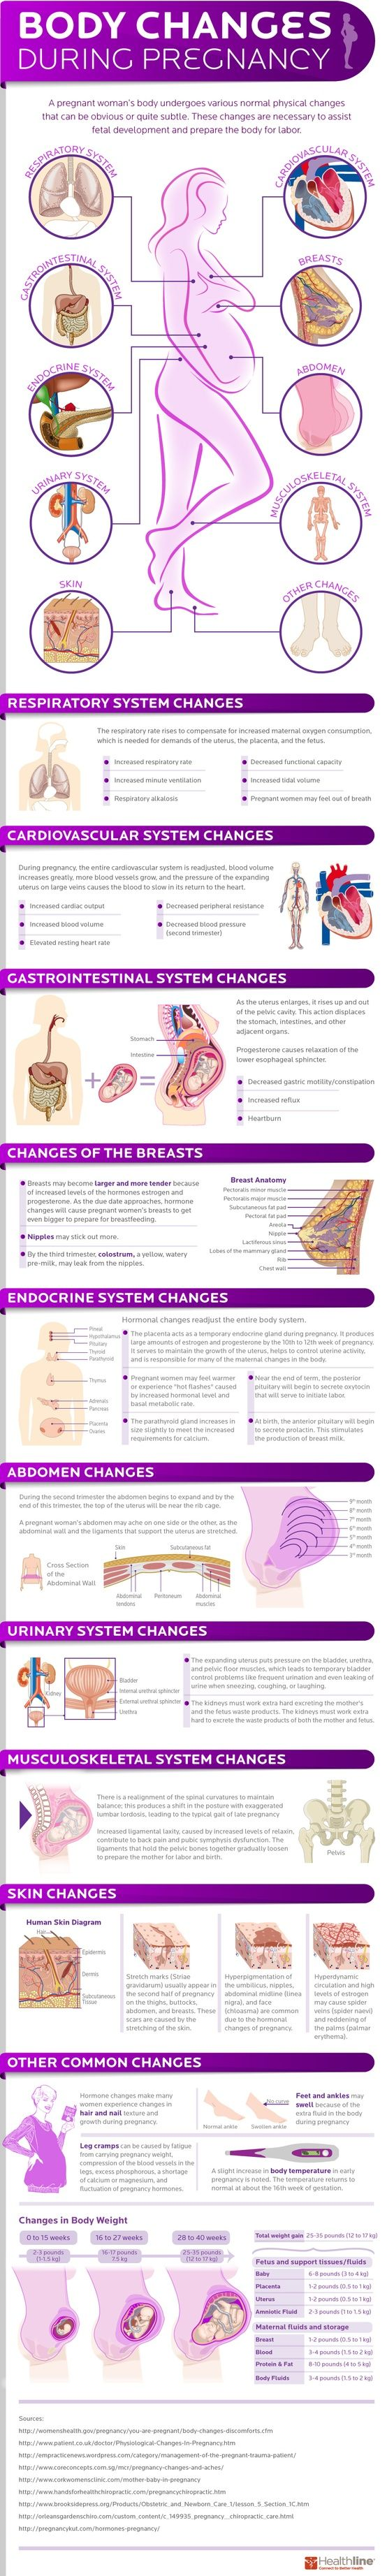 Pregnancy - Popular Health & Fitness Pins on Pinterest